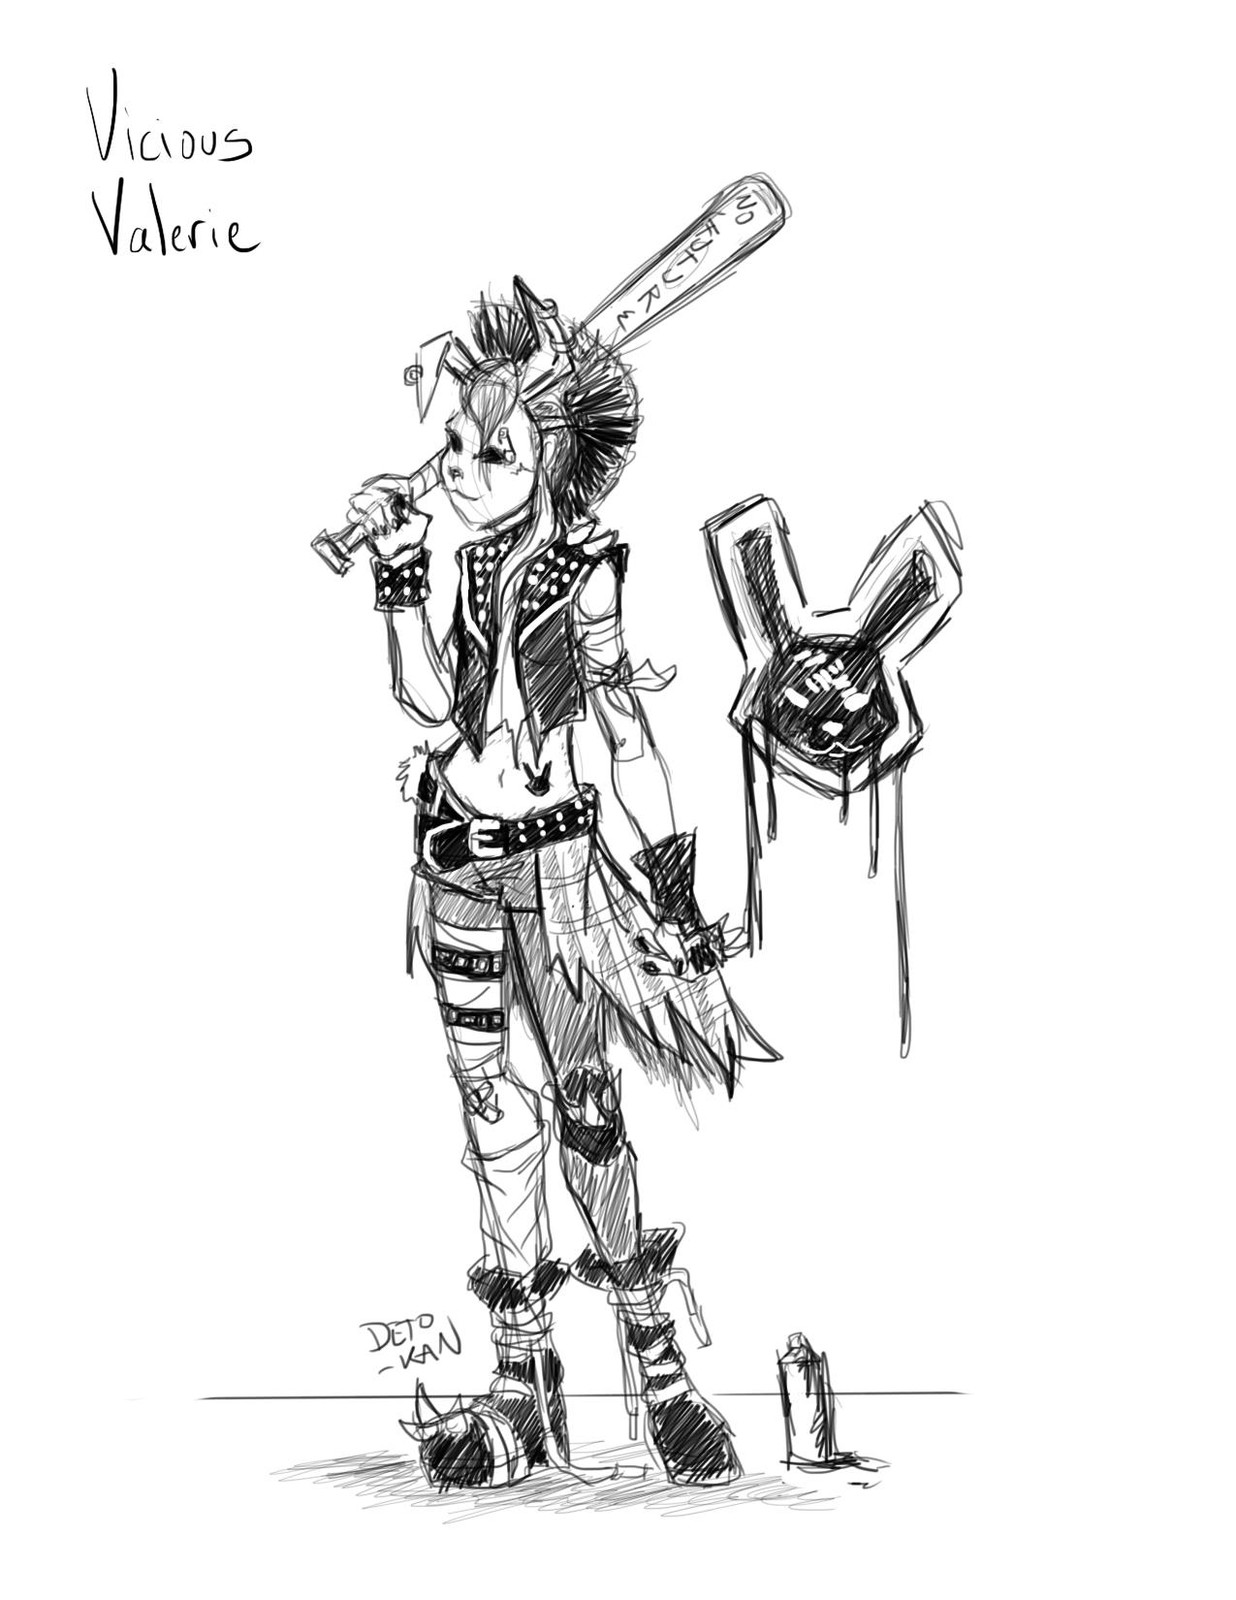 Punk Bunny Challenge - Initial Sketch